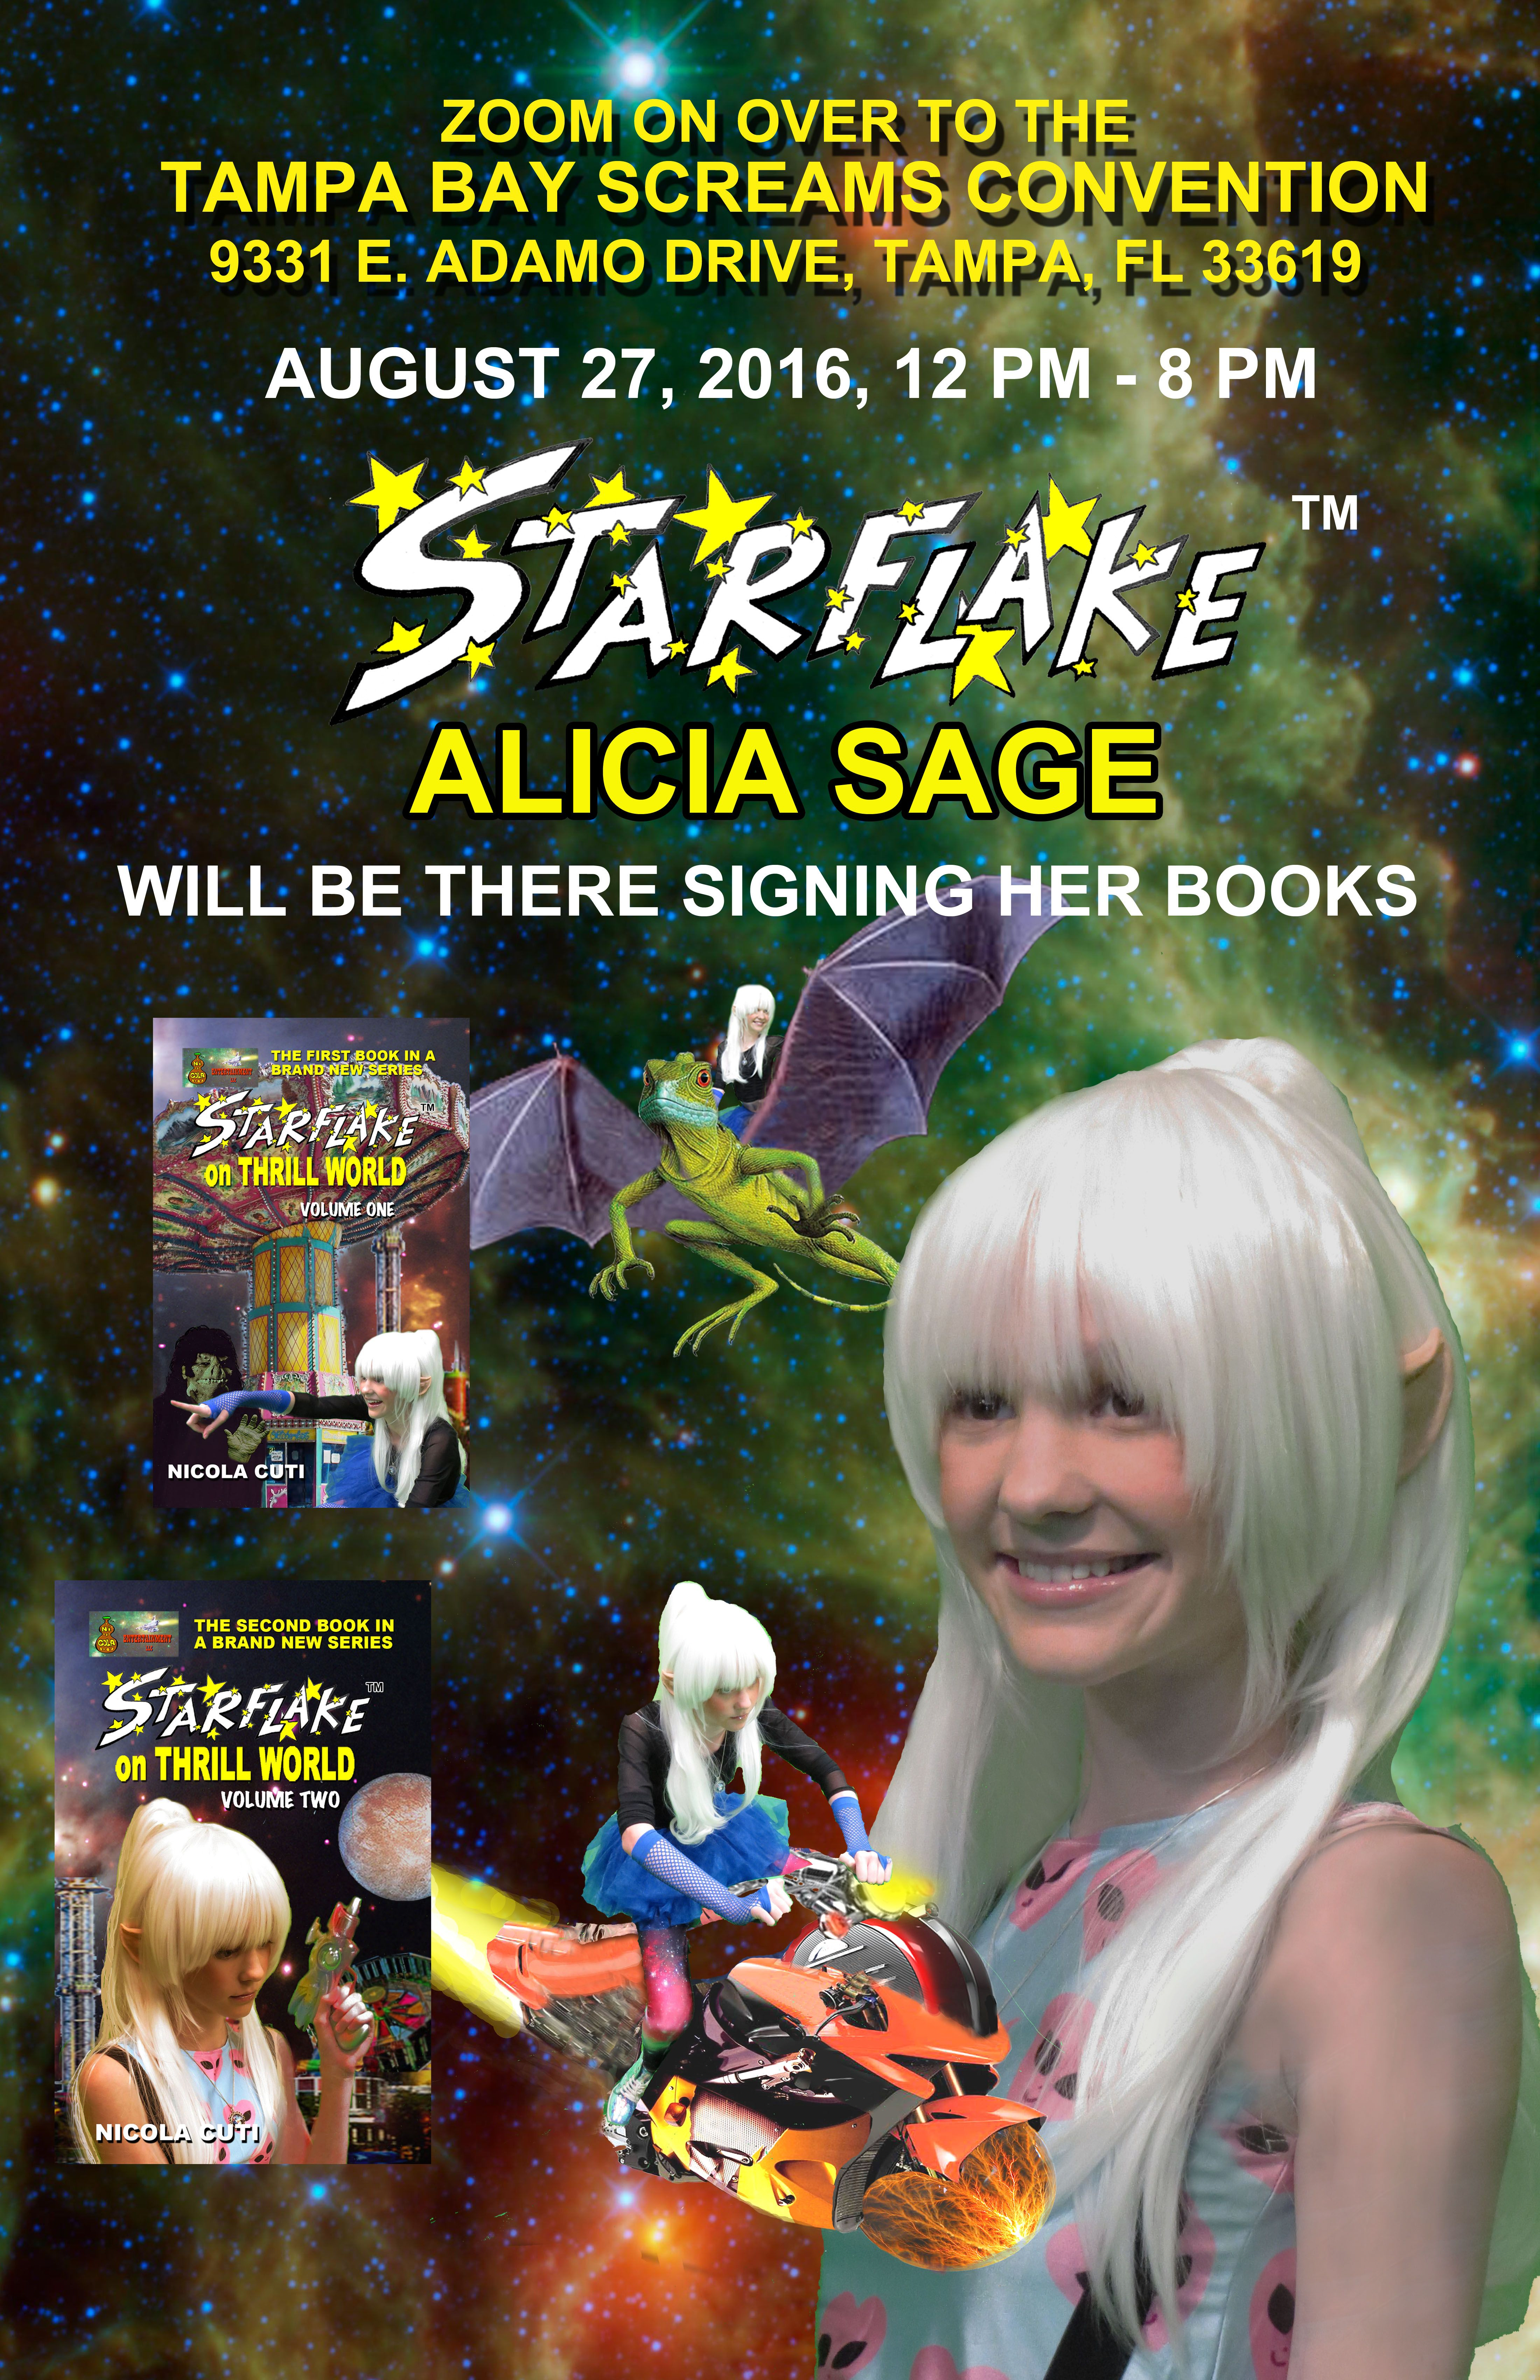 Alicia Sage as #Starflake appearing at the Tampa Bay Scream Convention Aug 27th